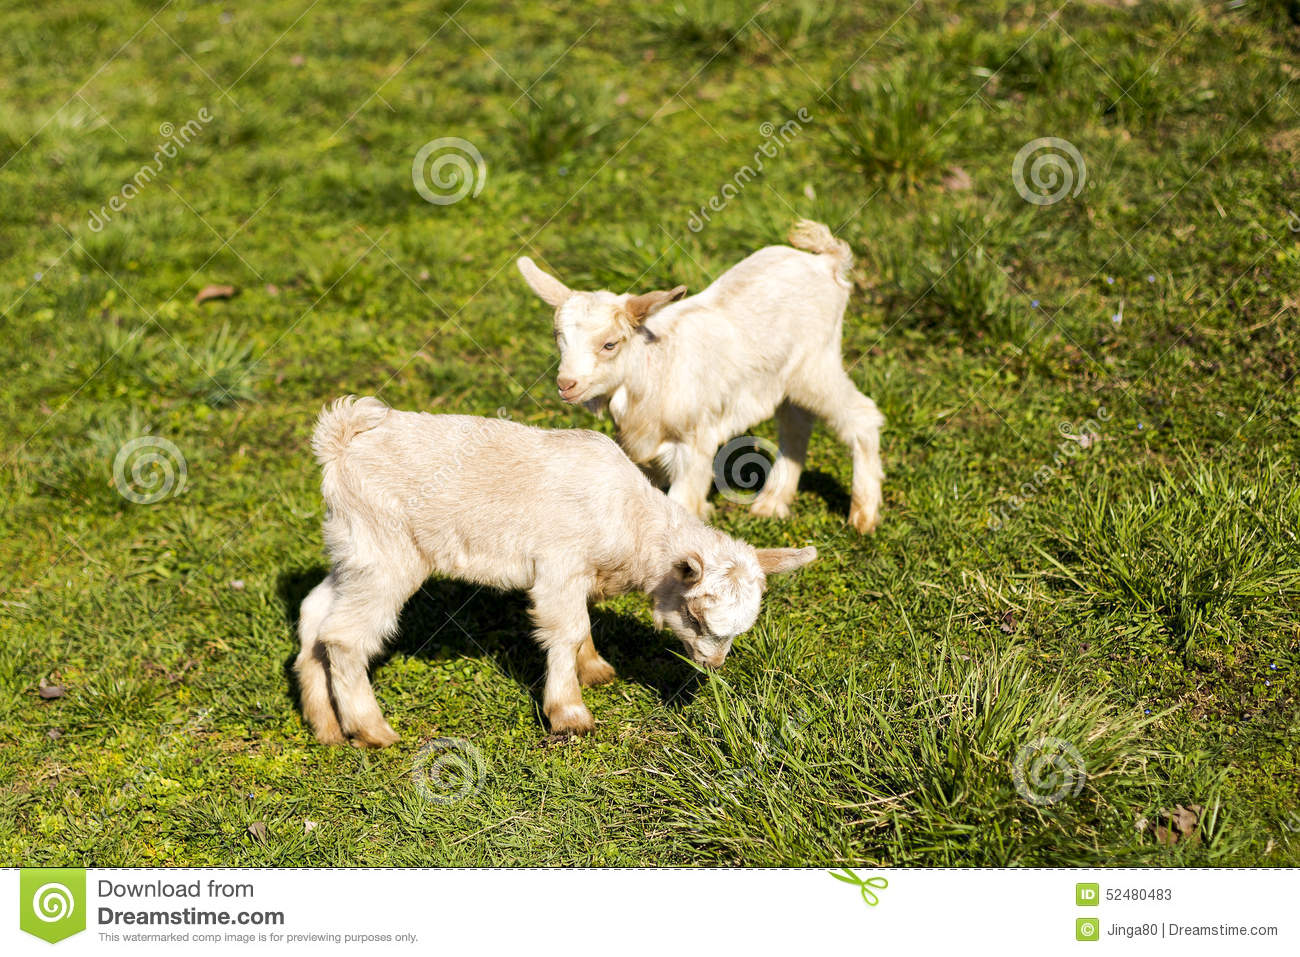 Two Baby Goats Playing Stock Photo - Image: 52480483